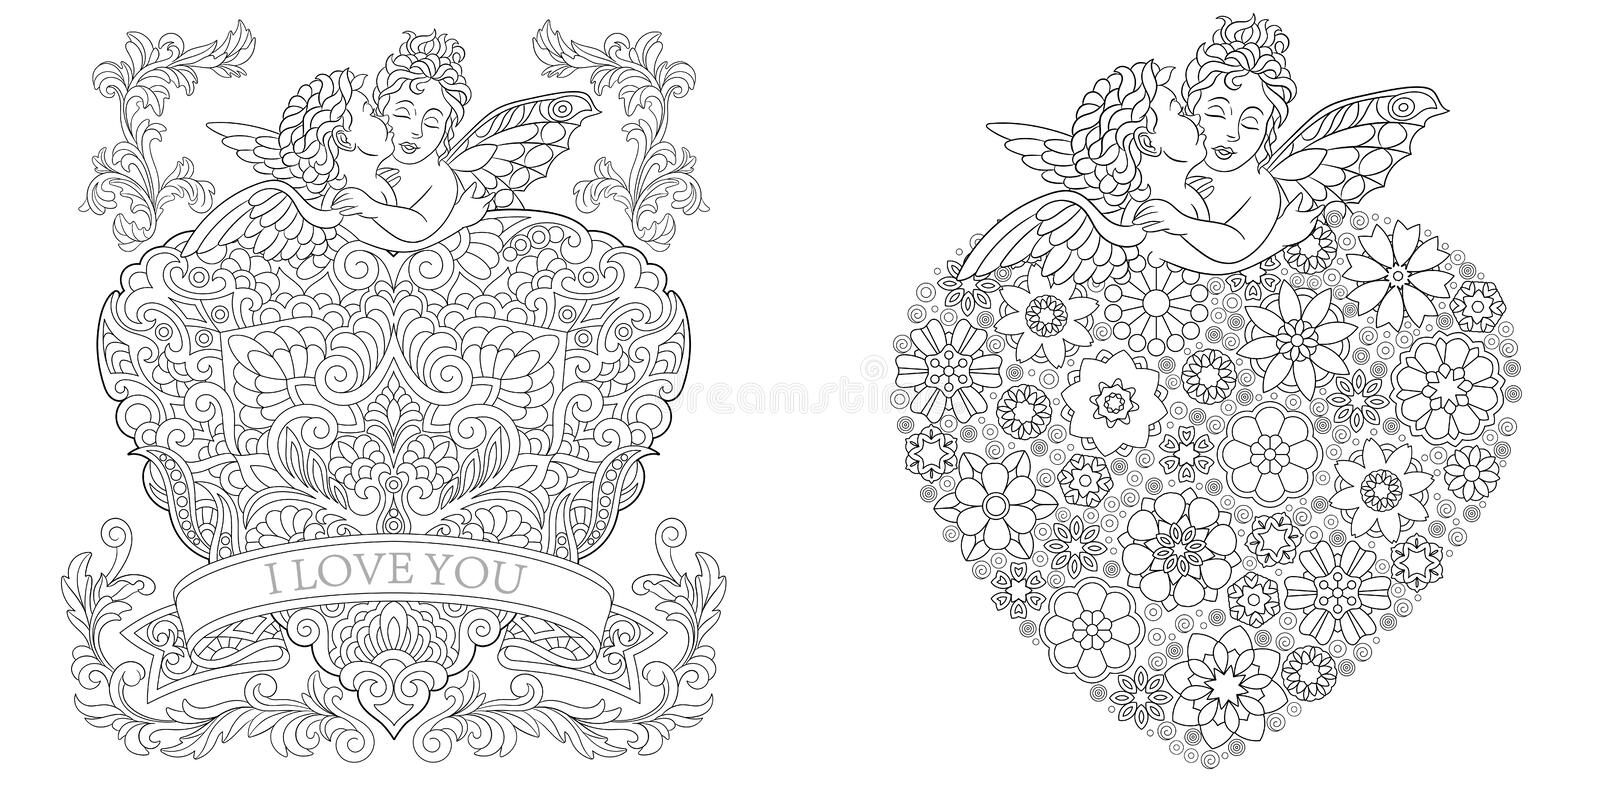 Coloring Pages. Coloring Book for adults. Colouring pictures. Valentines day greeting cards drawn in zentangle style. Vector royalty free stock photography